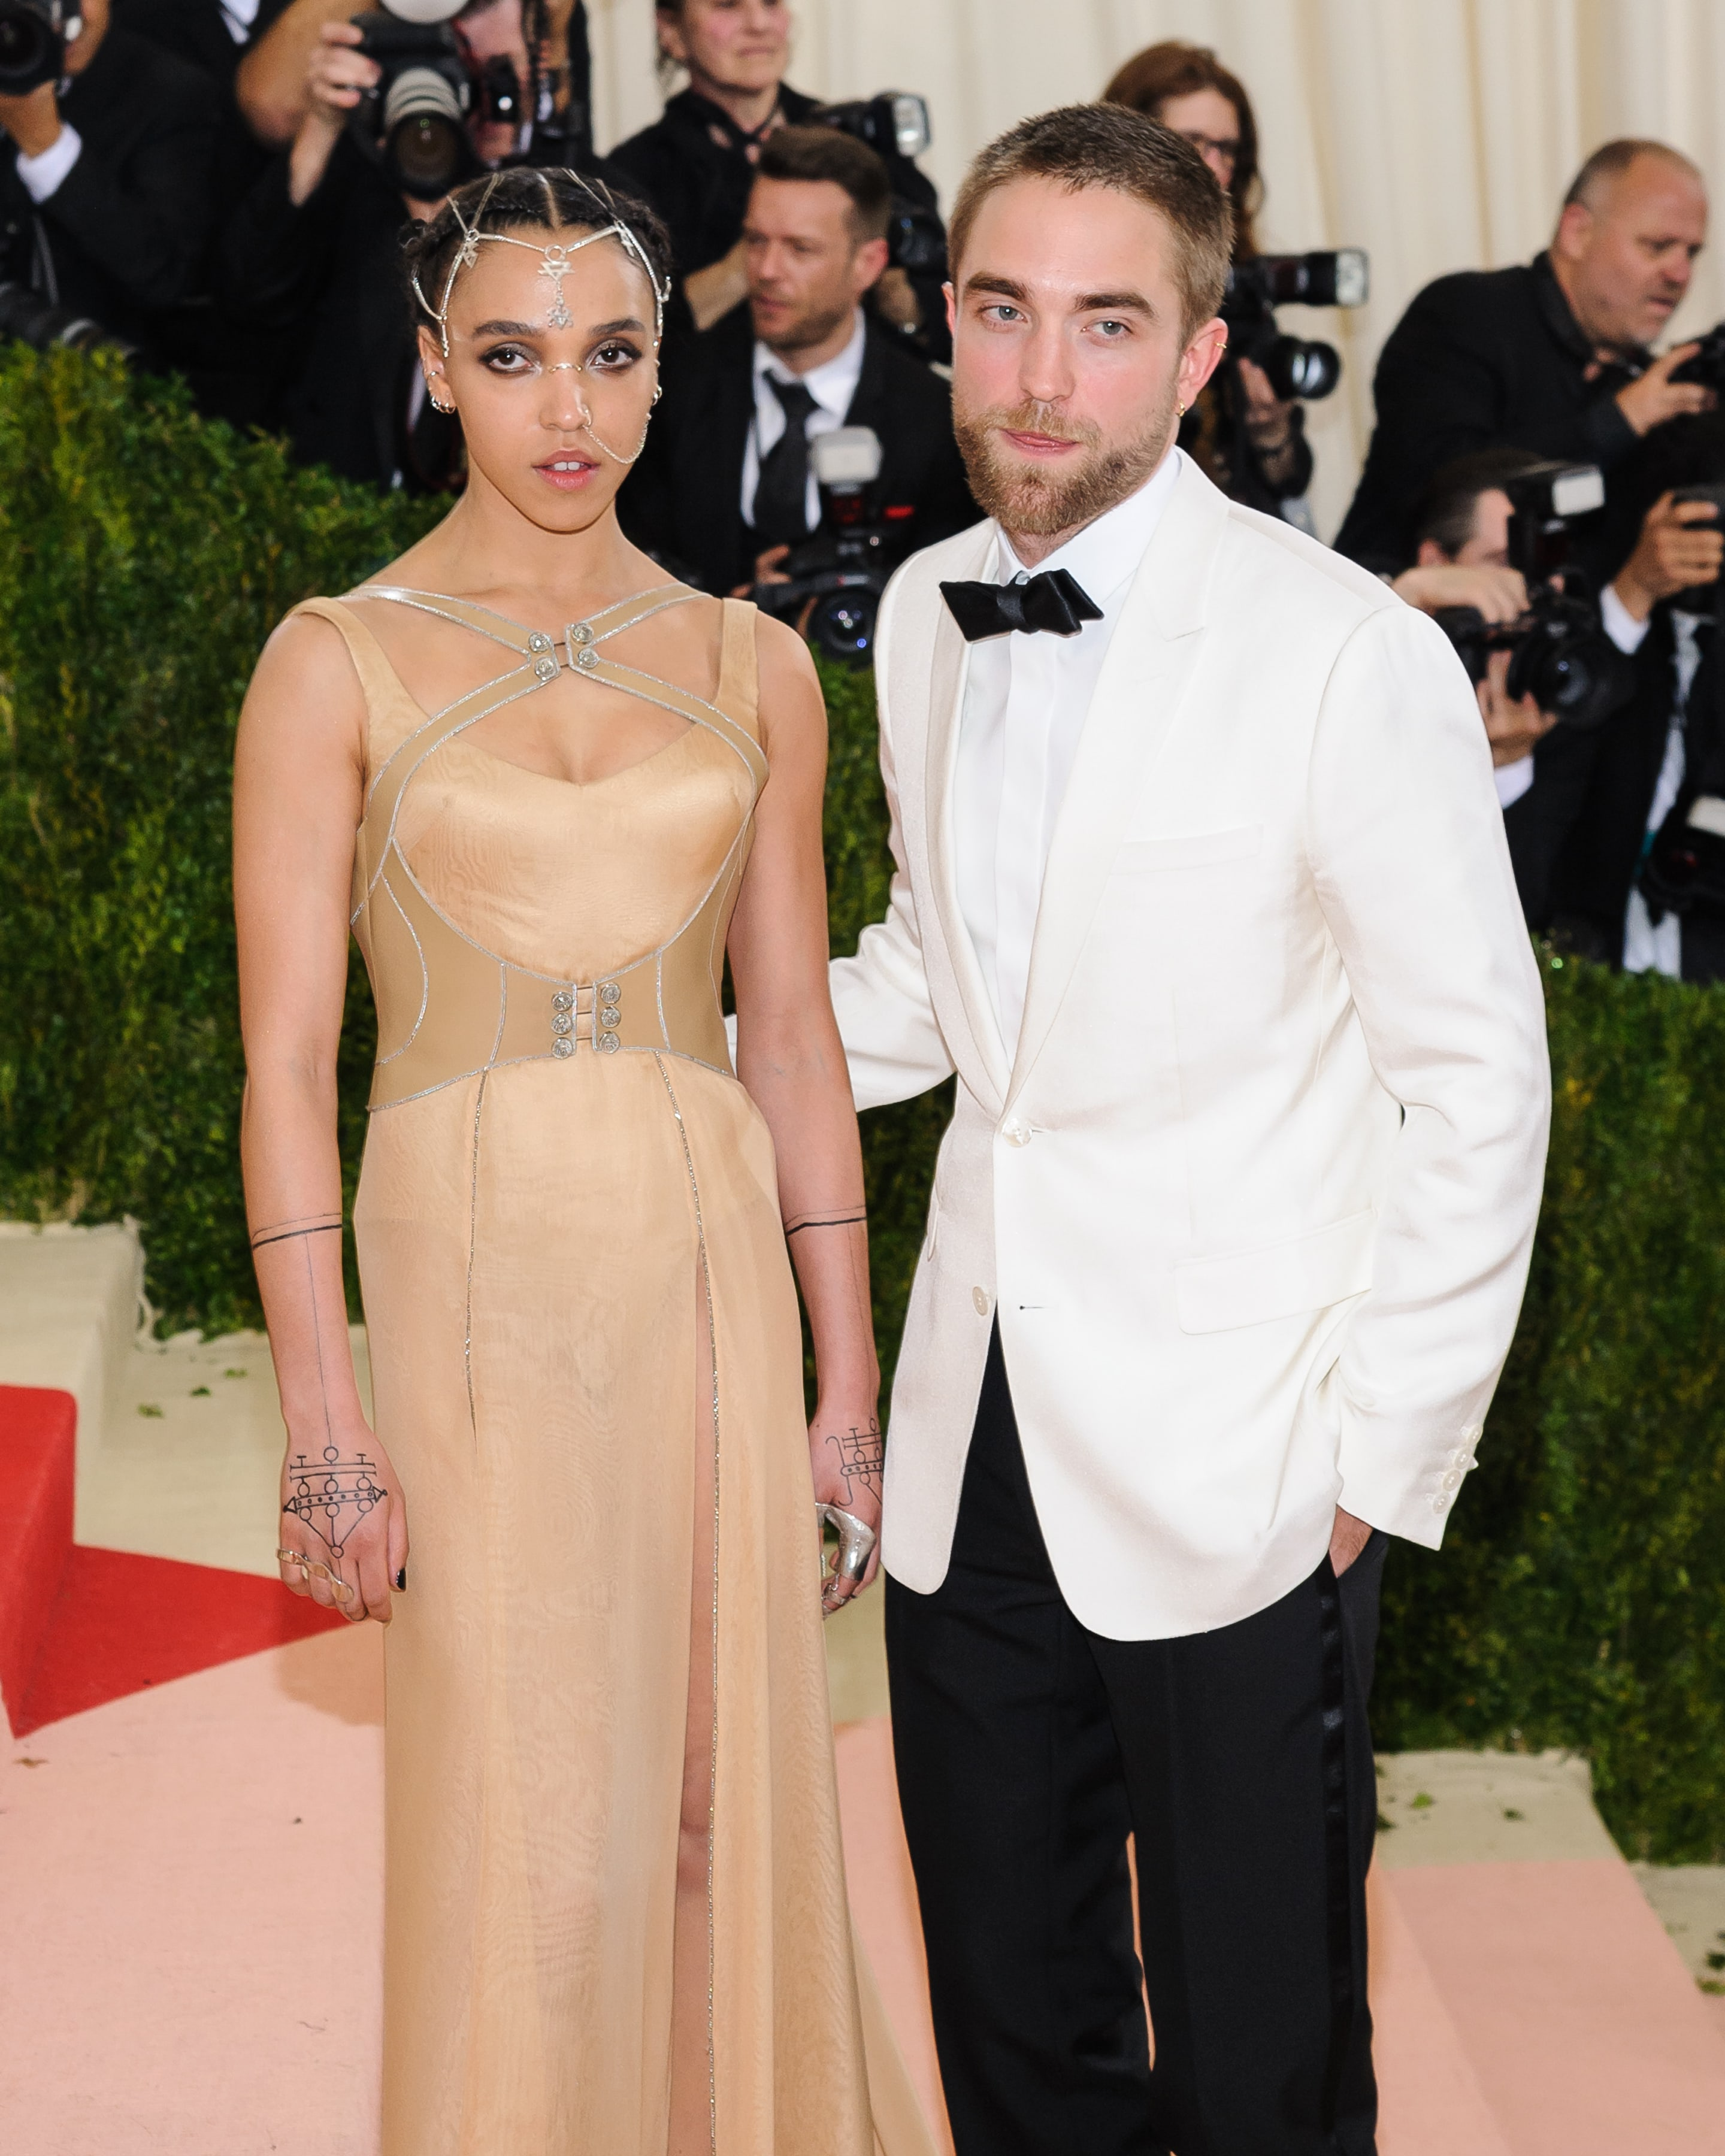 Robert Pattinson Dating FKA Twigs Actor Is Really in